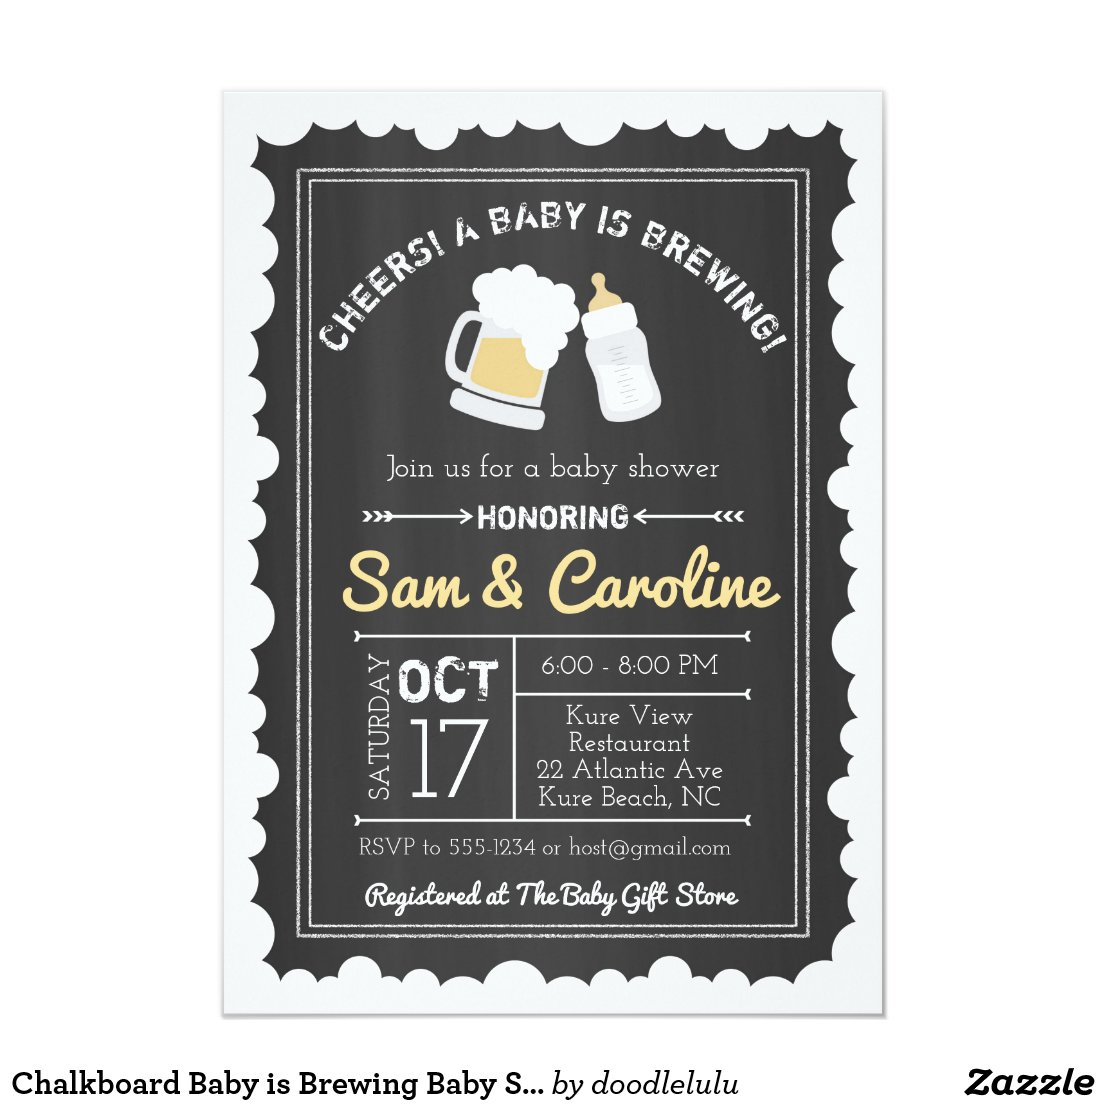 Chalkboard Baby is Brewing Baby Shower, Bubbles Invitation